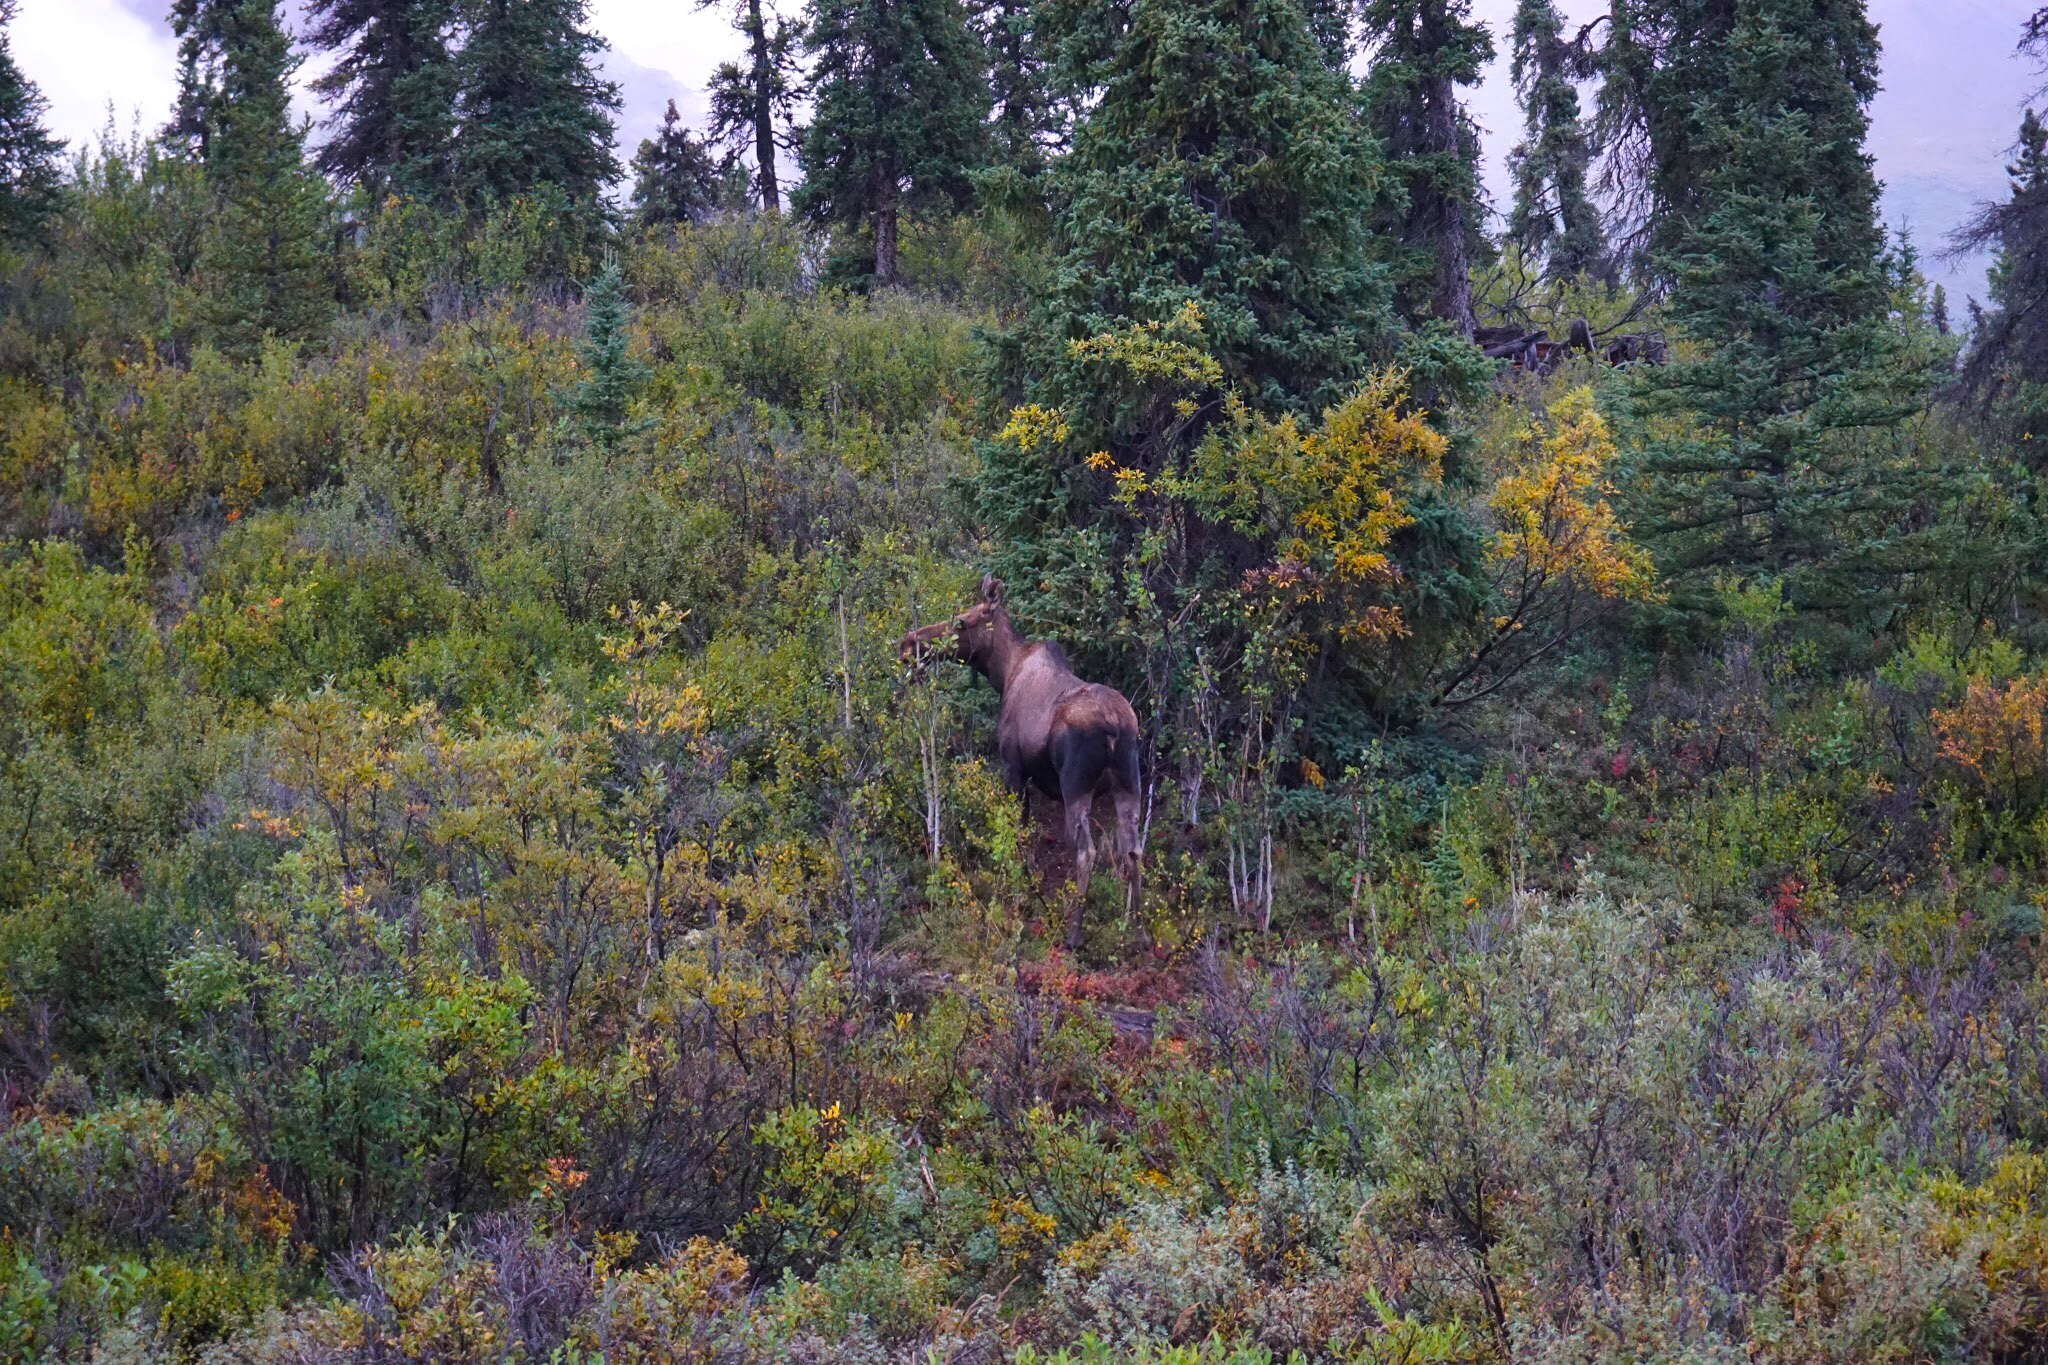 Moose in Denali National Park